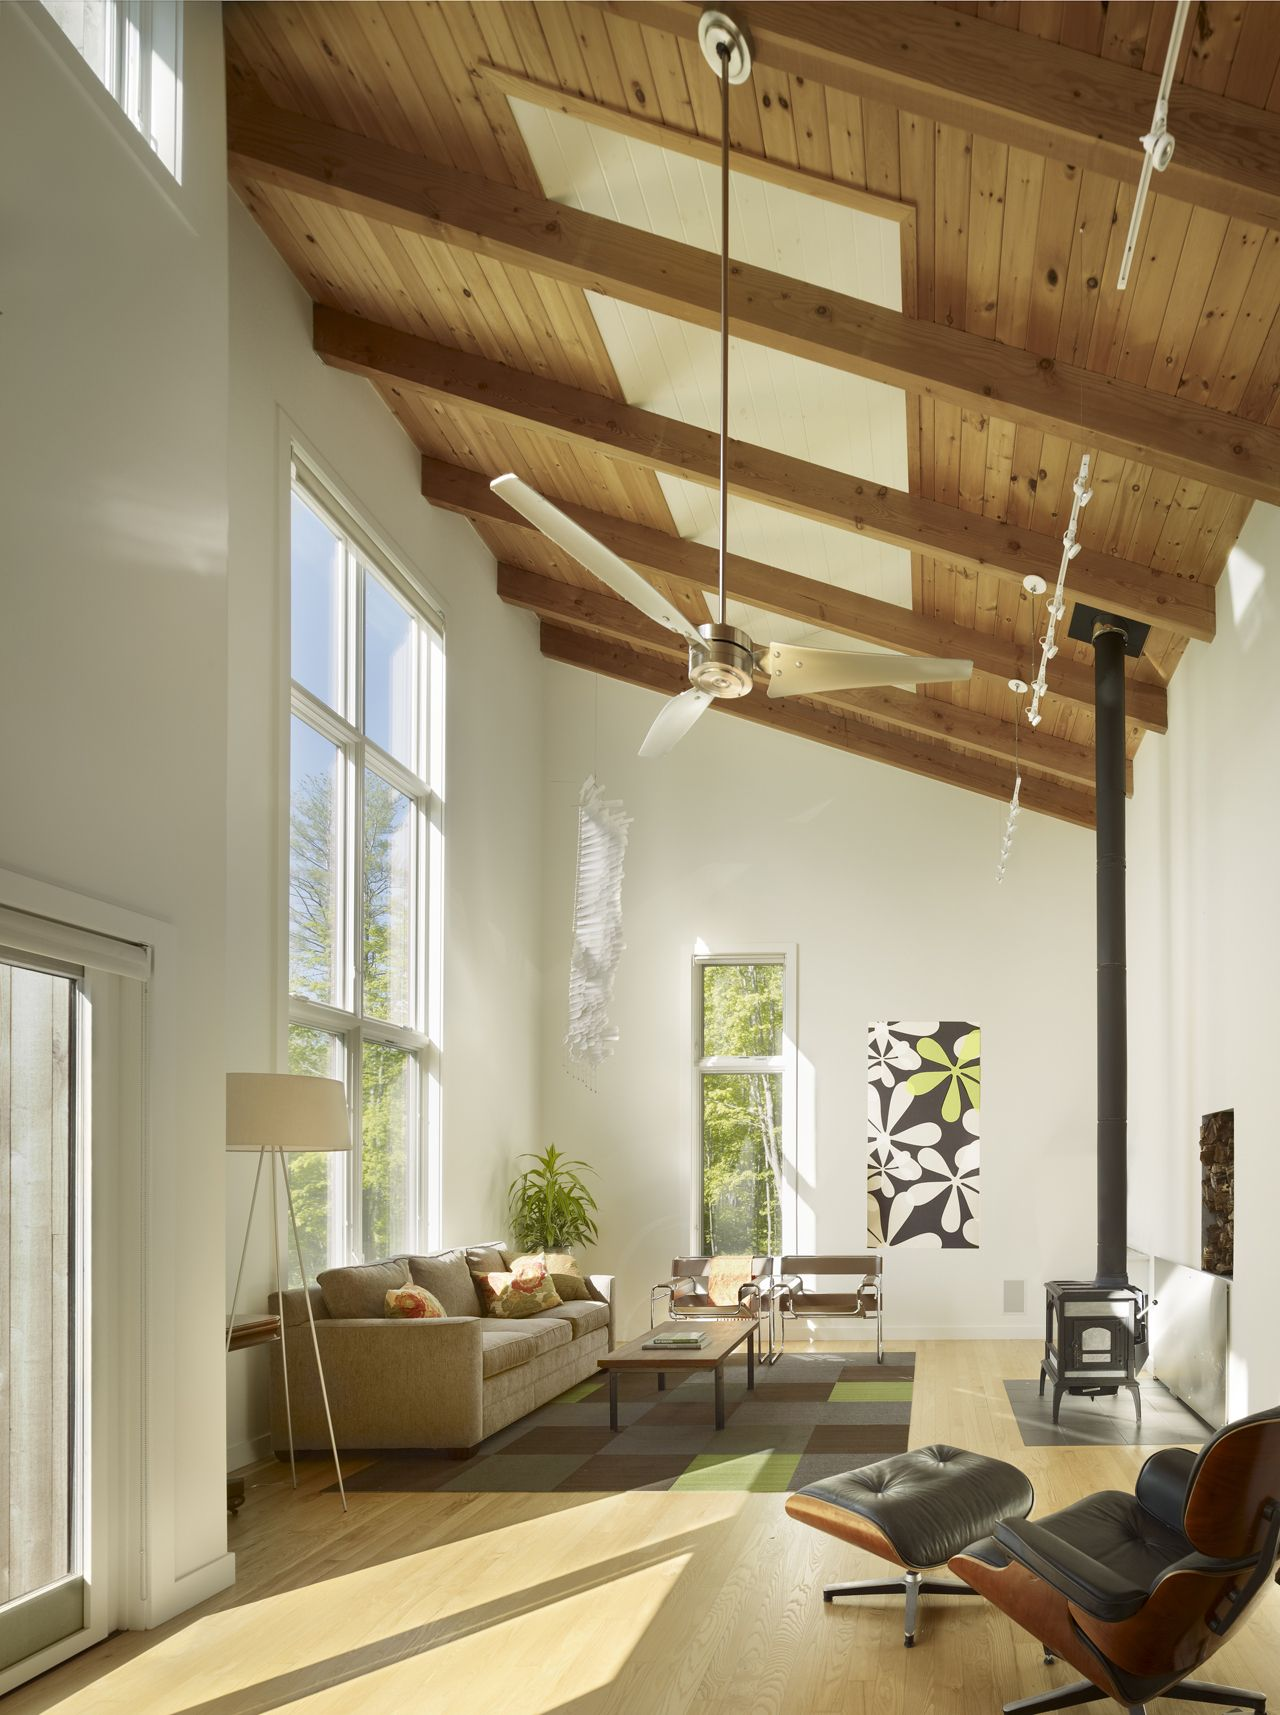 smsender tulum ceilings peaksview designs co wooden wood clb arch ceiling